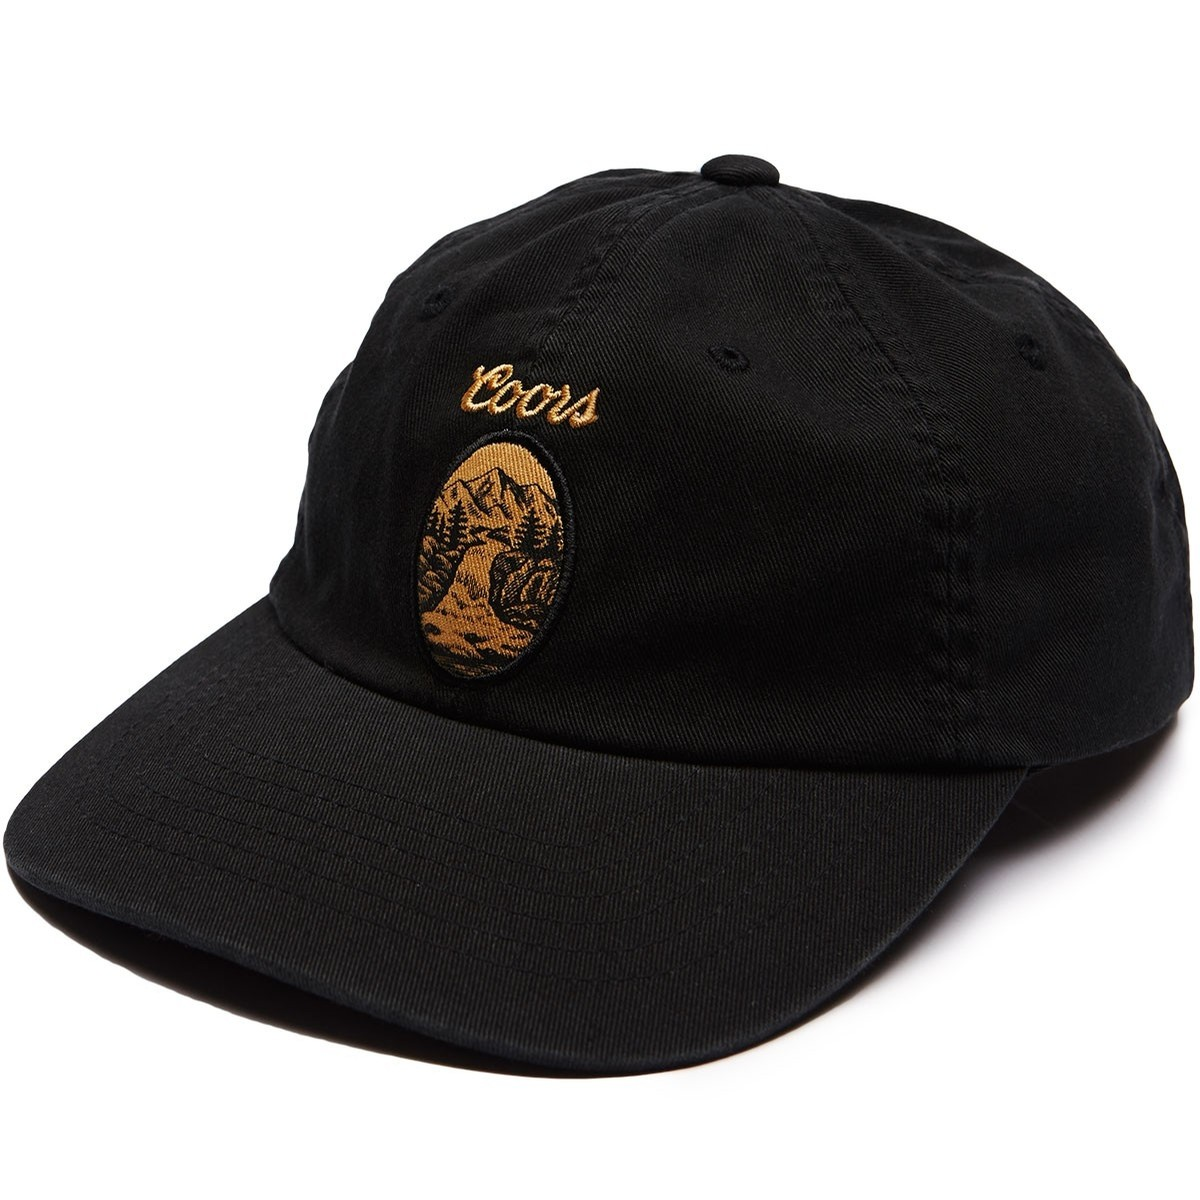 X Coors Filtered Hat (Black)